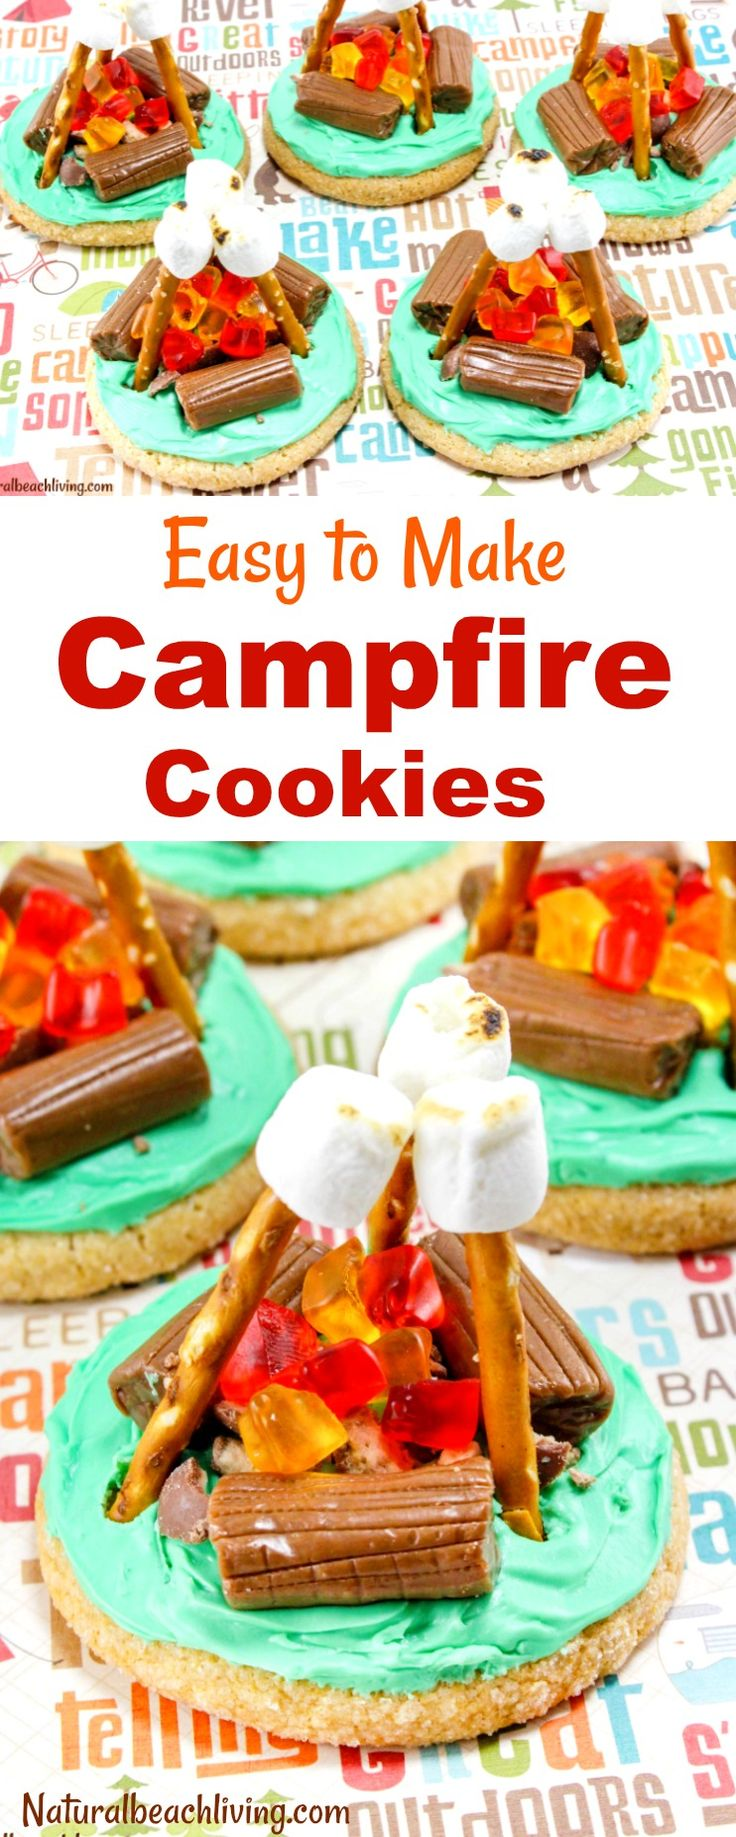 How to Make Campfire Cookies Everyone Will Love, Camping Theme, Camping Party Ideas, Camping food, Party food, Cookies, Easy Sugar Cookie Ideas, Kids Snacks